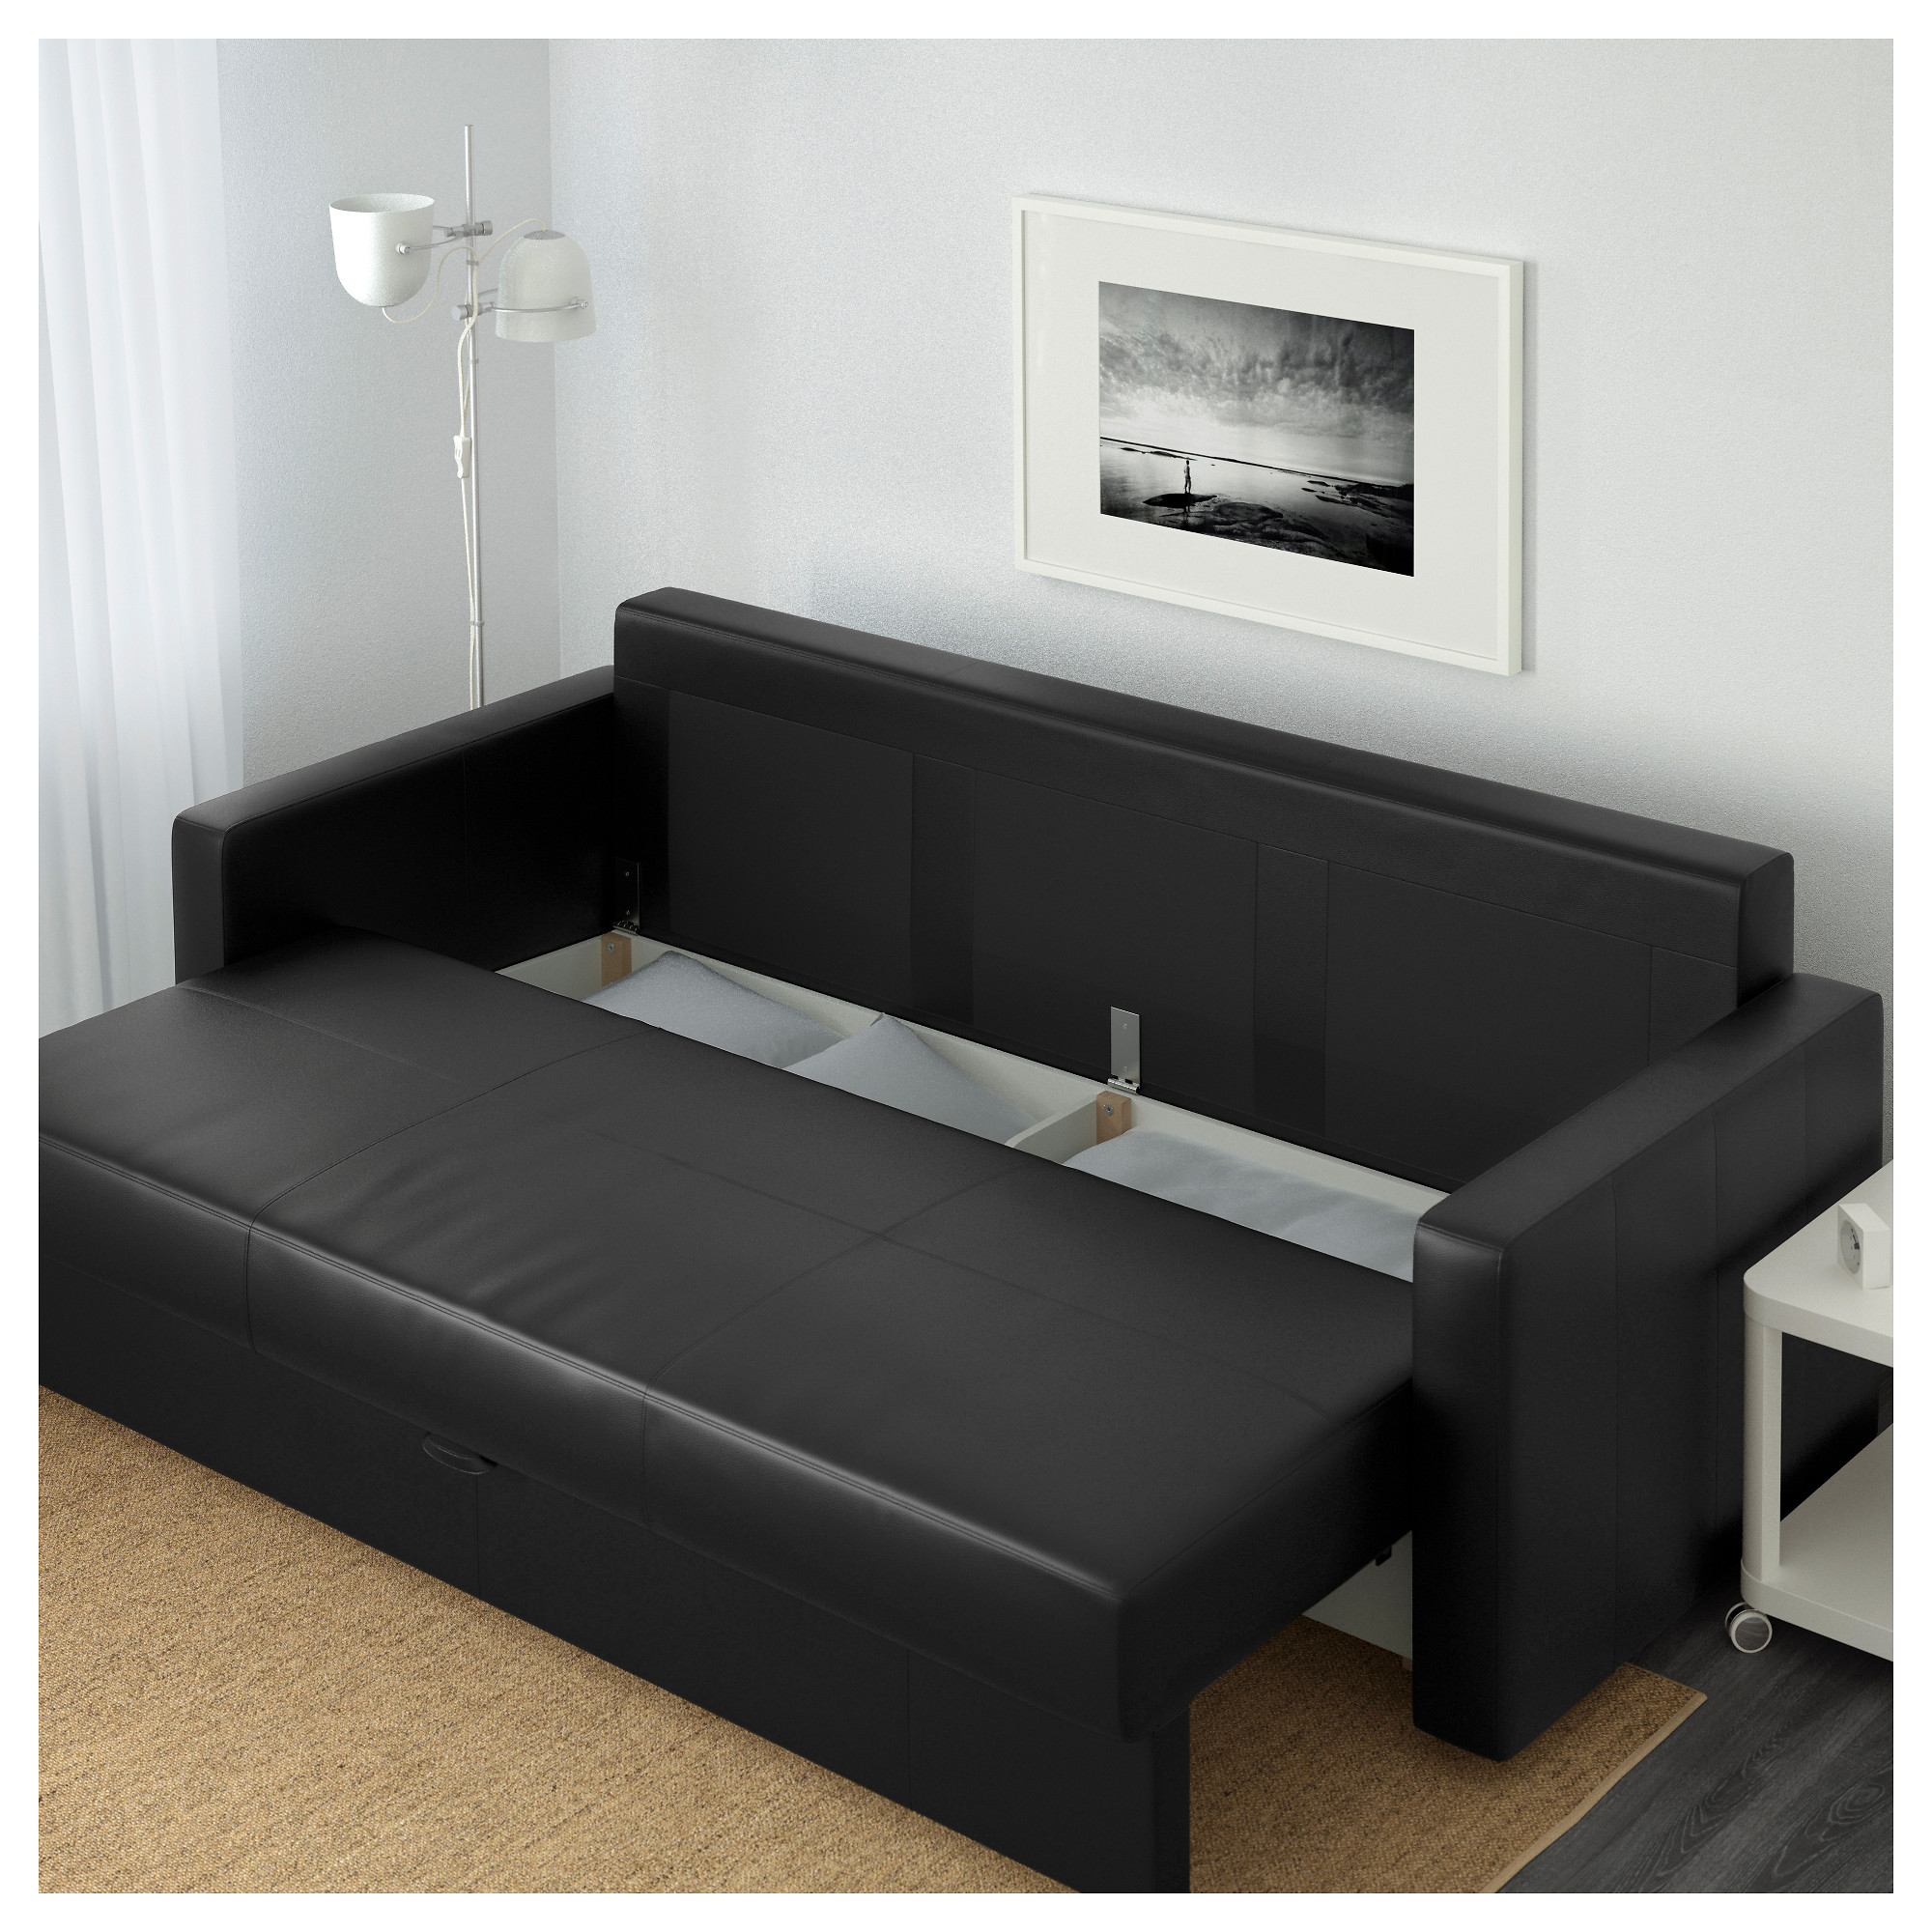 Flip Chair Bed | Friheten Corner Sofa-bed | Moheda Sofa Bed